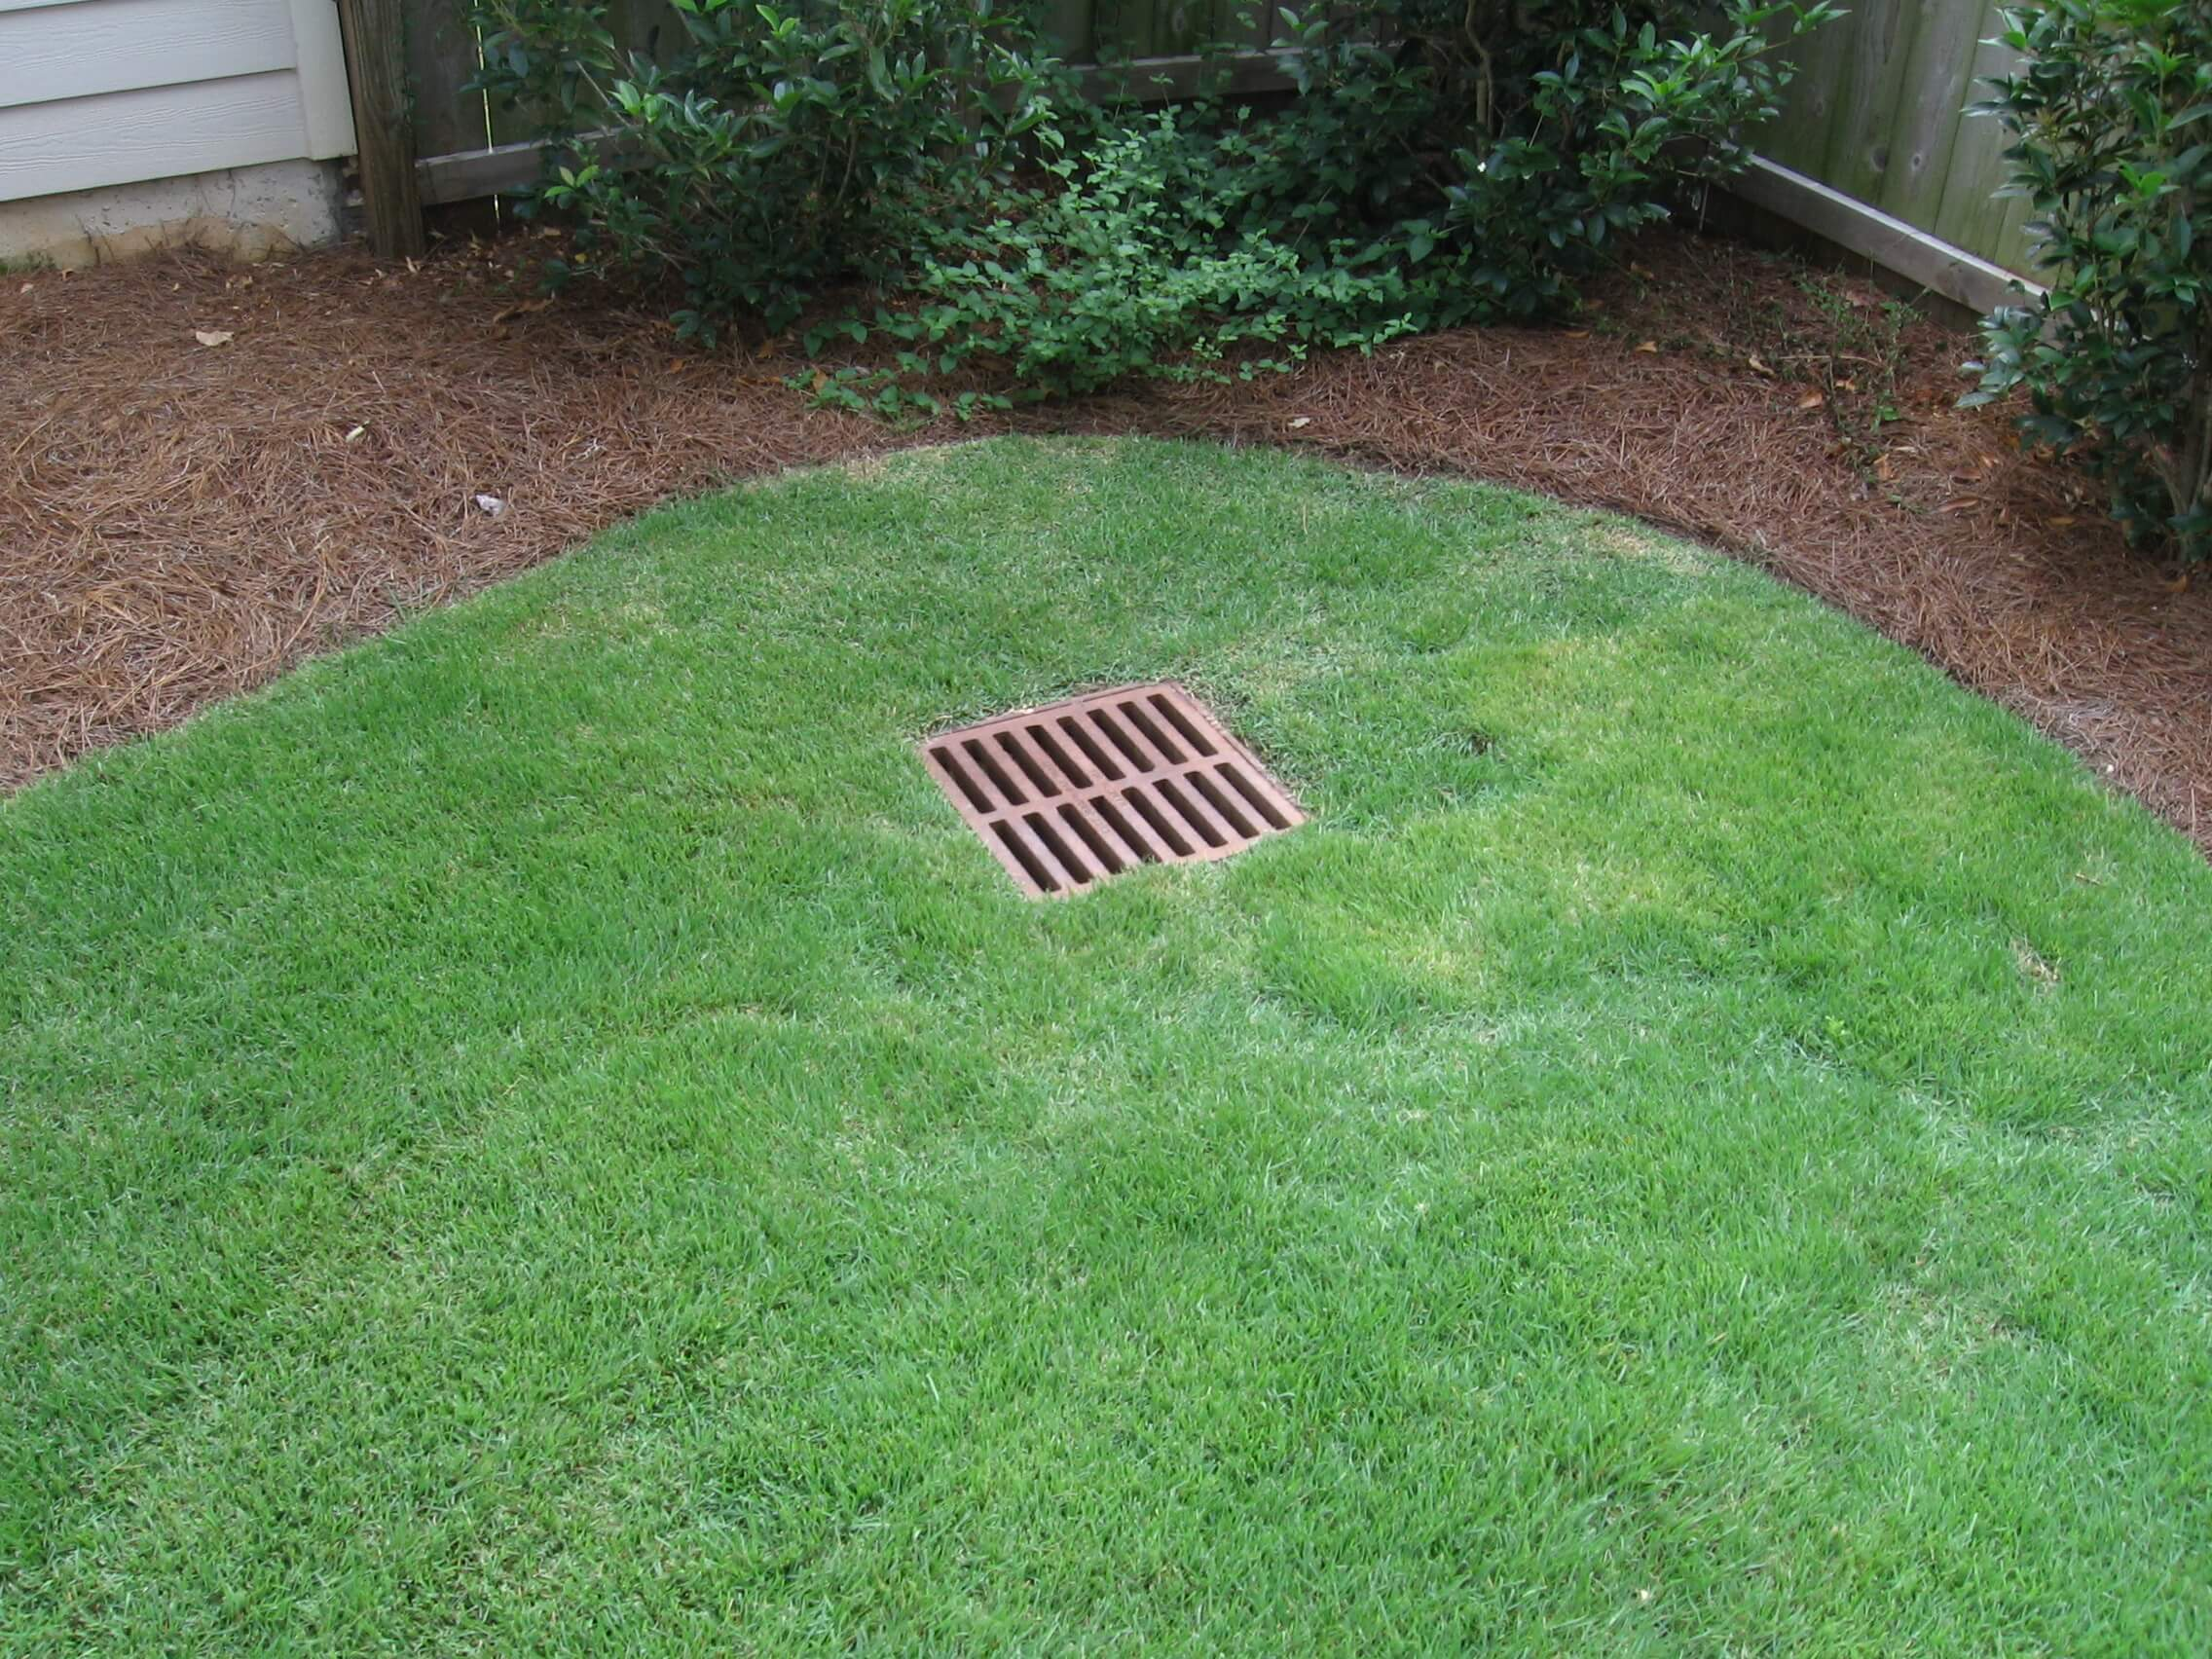 Landscaping Yard Drainage : Catch basin drainage